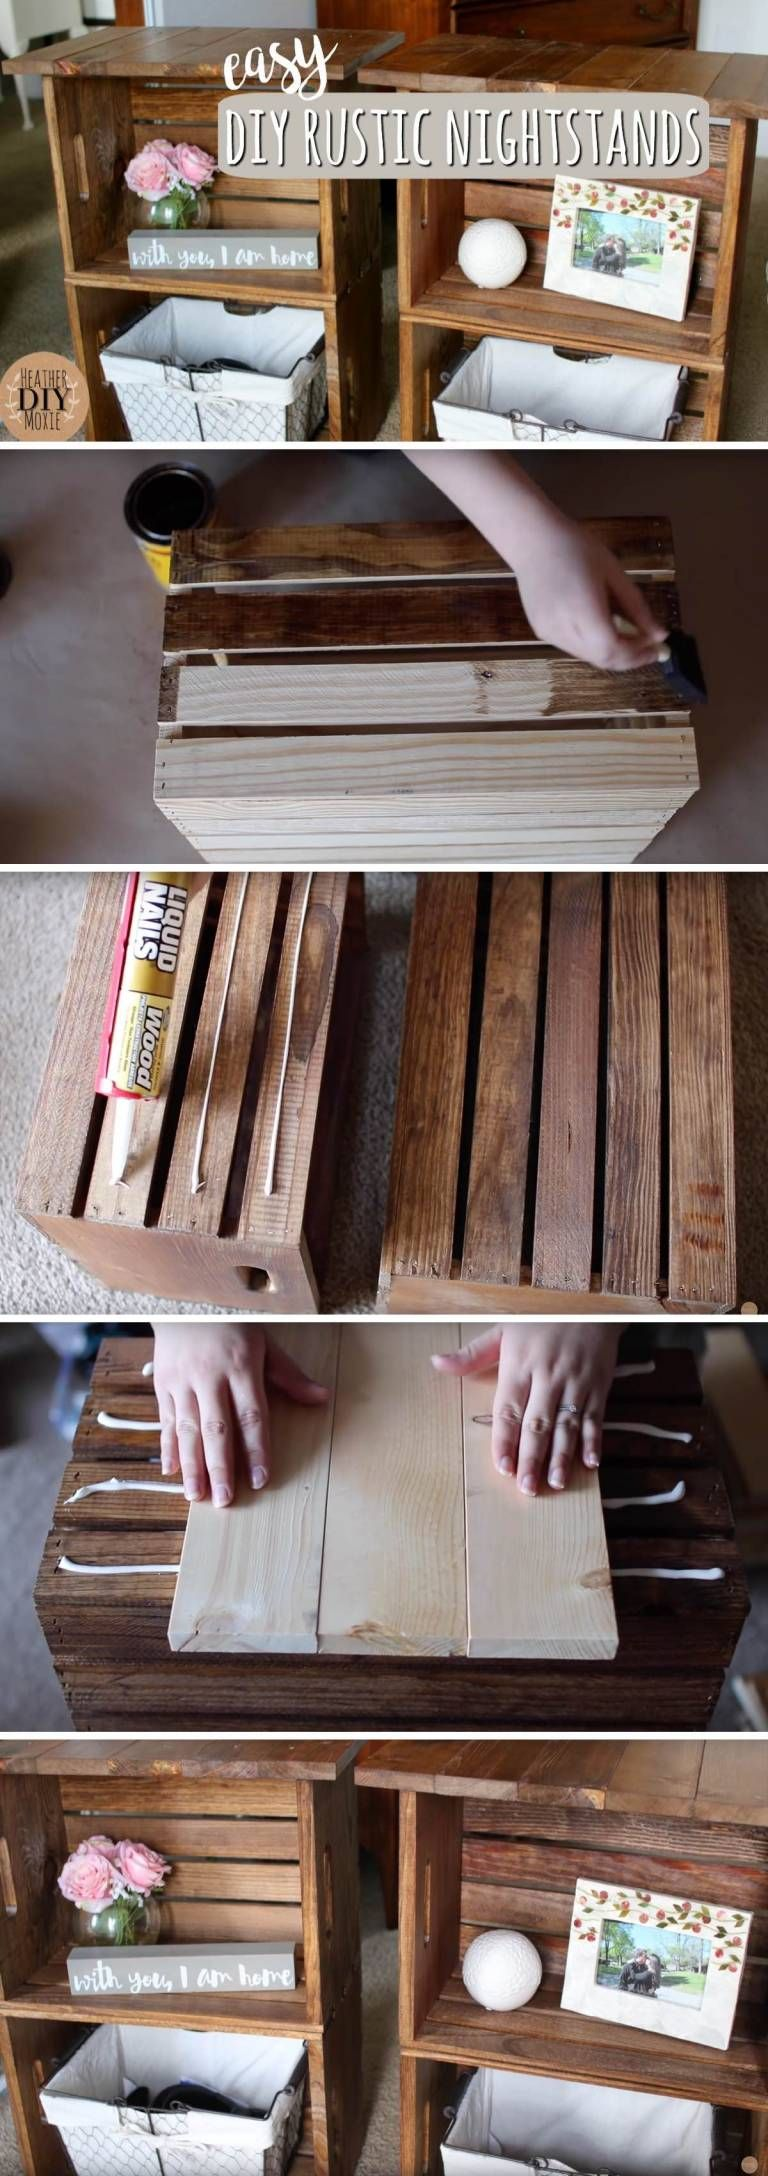 Assembling and Adhering Two Wooden Crates Together Yields Marvellous DIY Rustic Nightstands! images